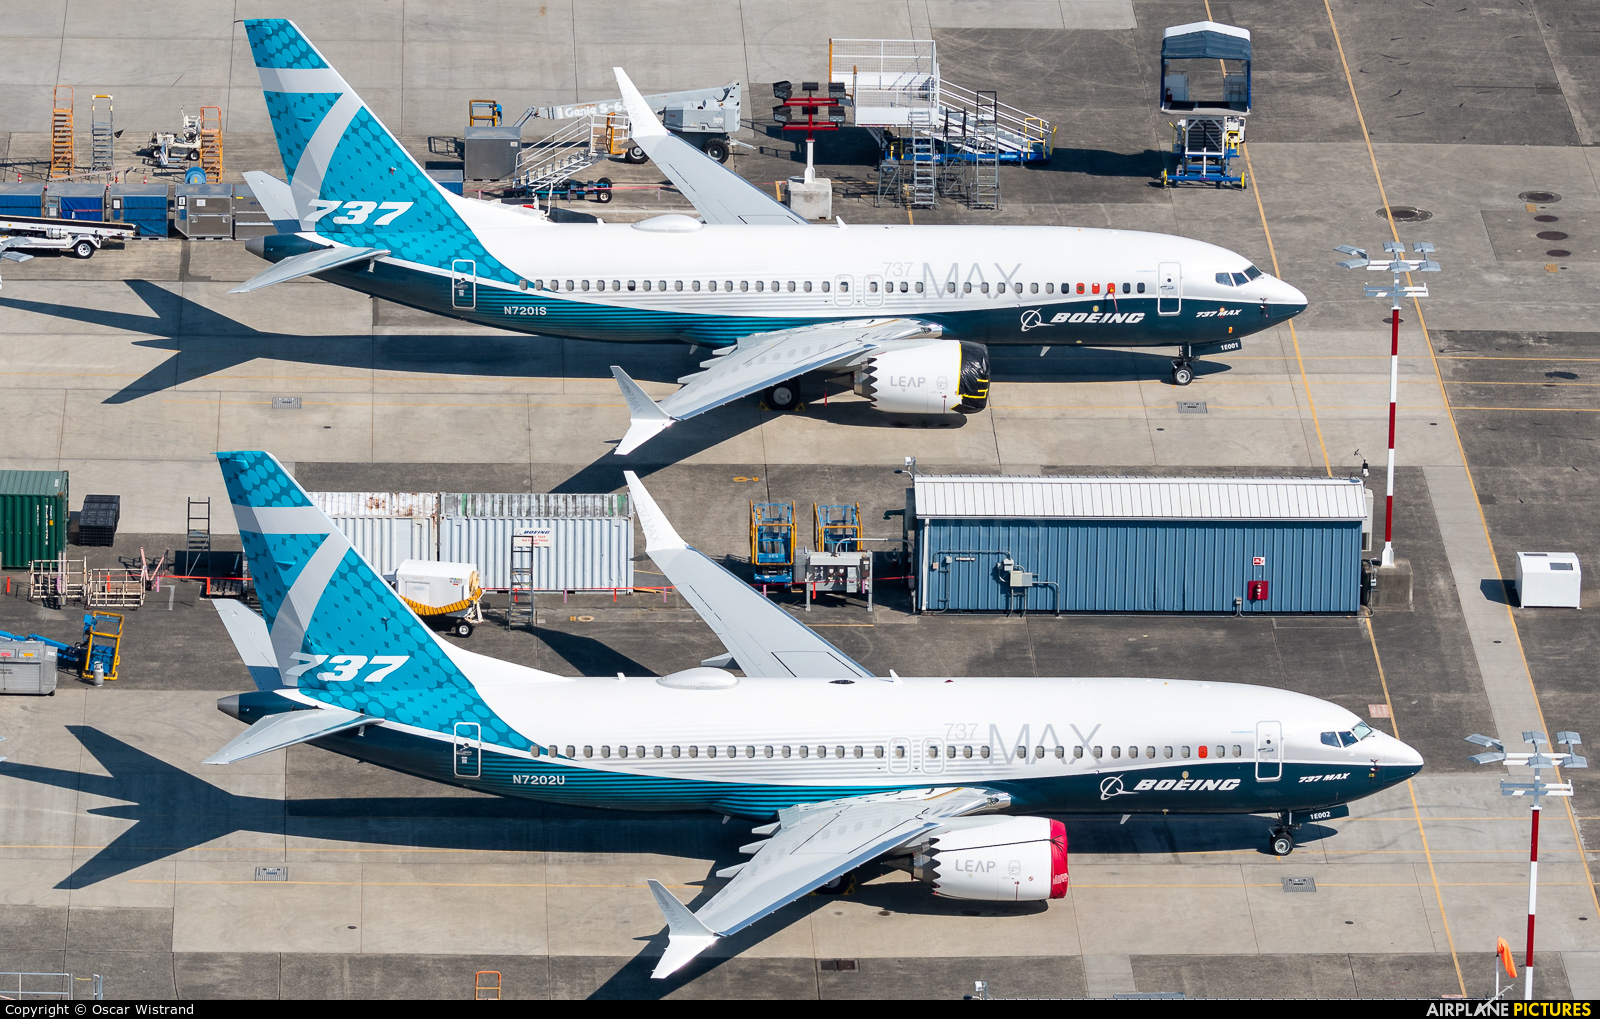 Boeing Company N7202U aircraft at Seattle - Boeing Field / King County Intl